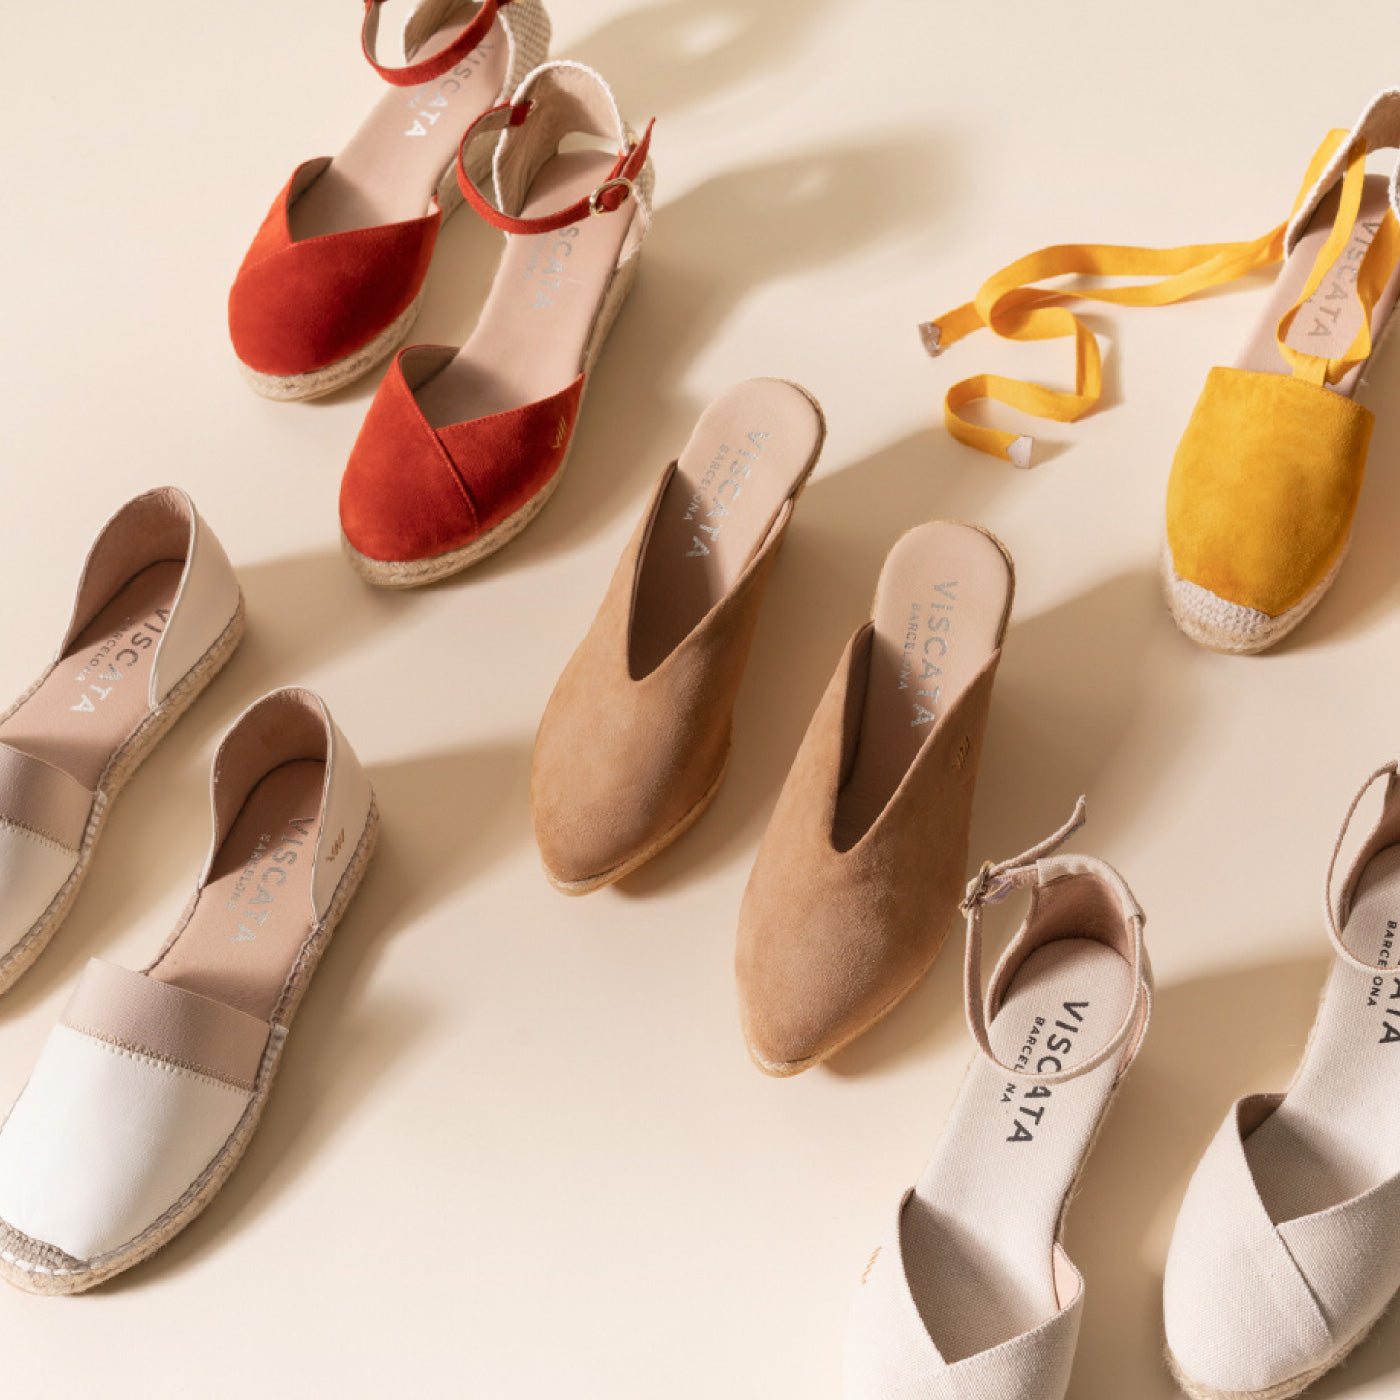 Viscata espadrilles wedges flats made in Spain handcrafting